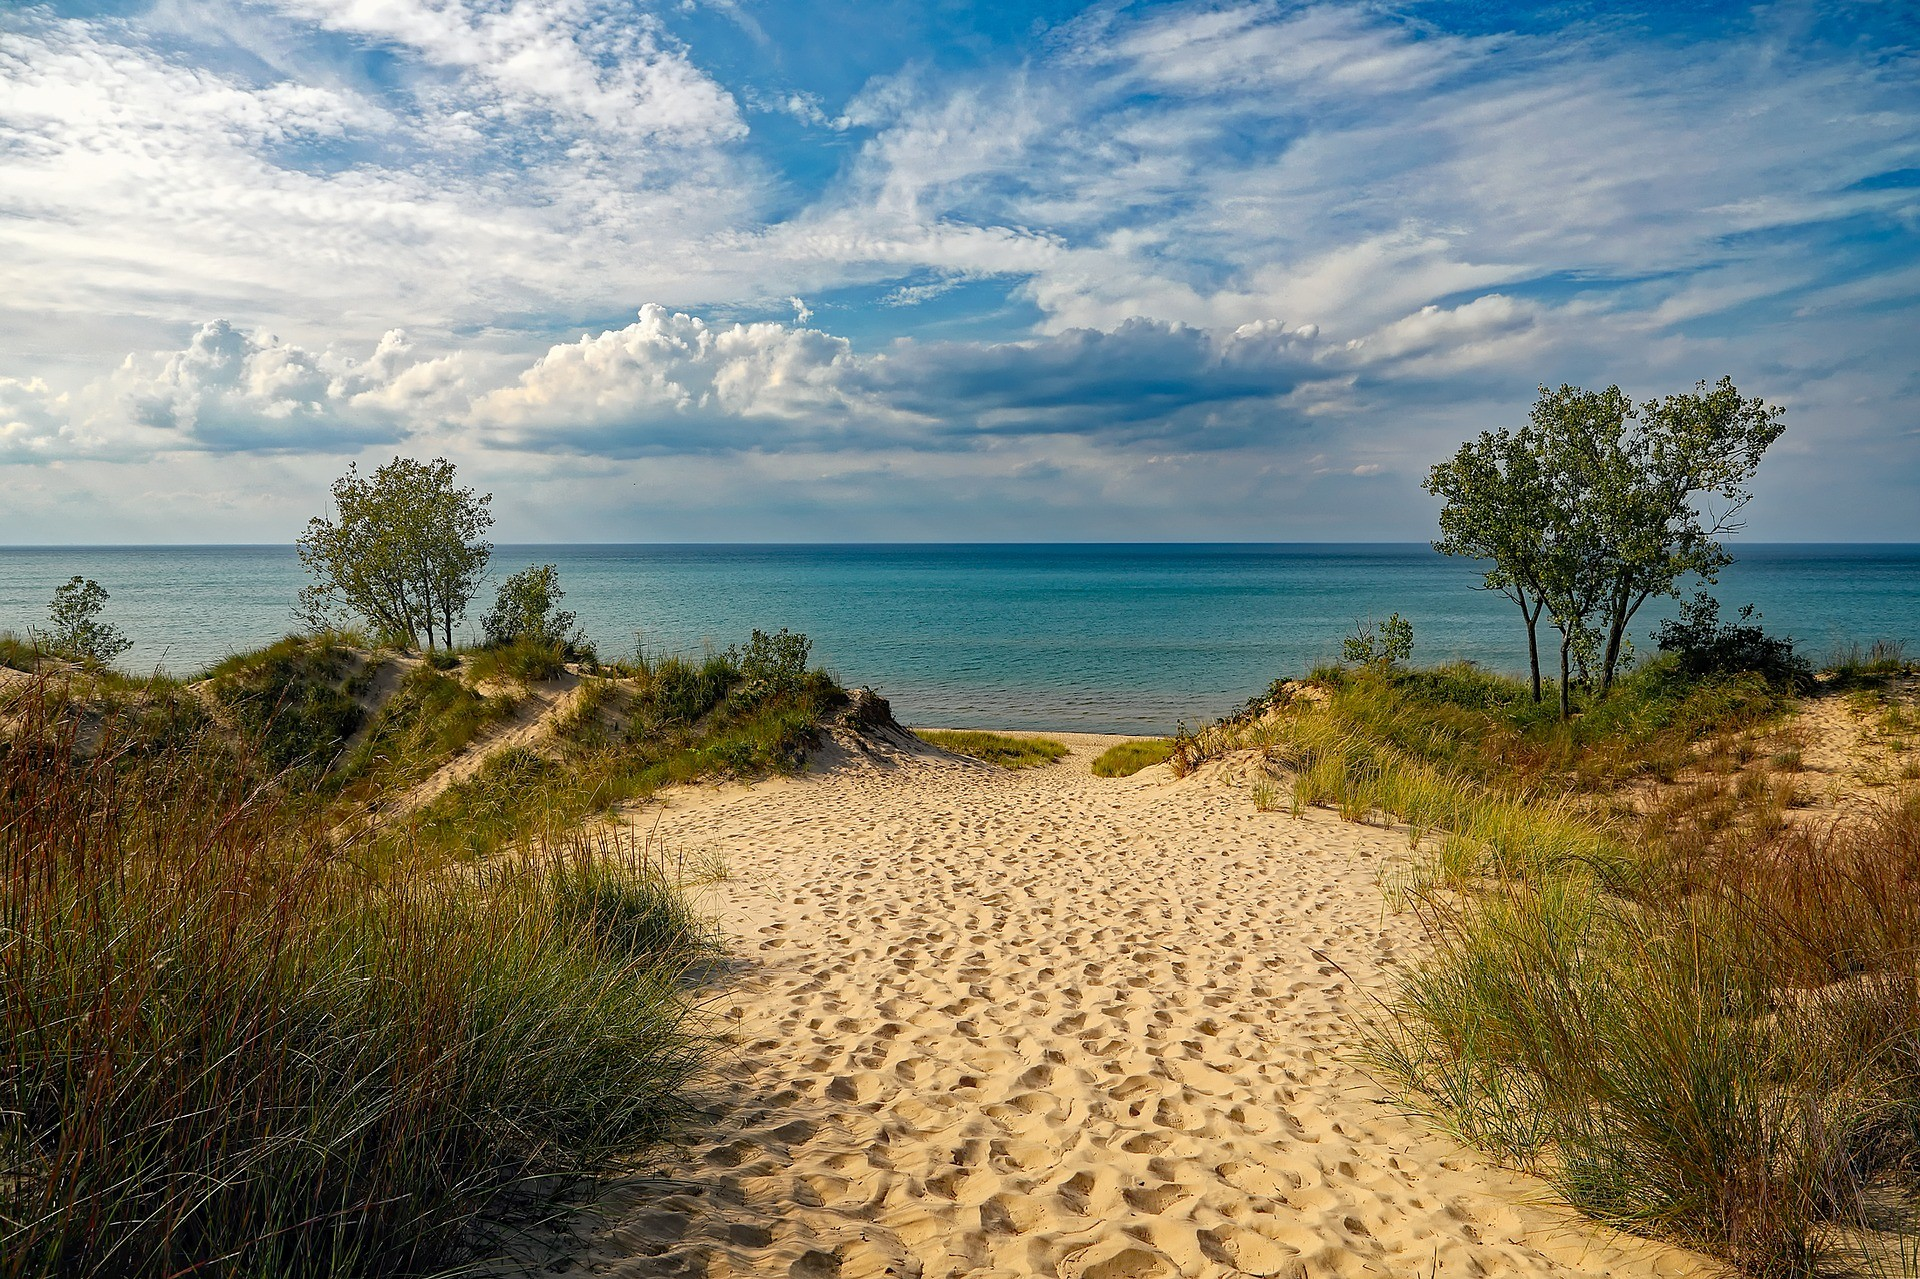 15375440559558465_by_hans3595_indiana-dunes-state-park-1848559_1920